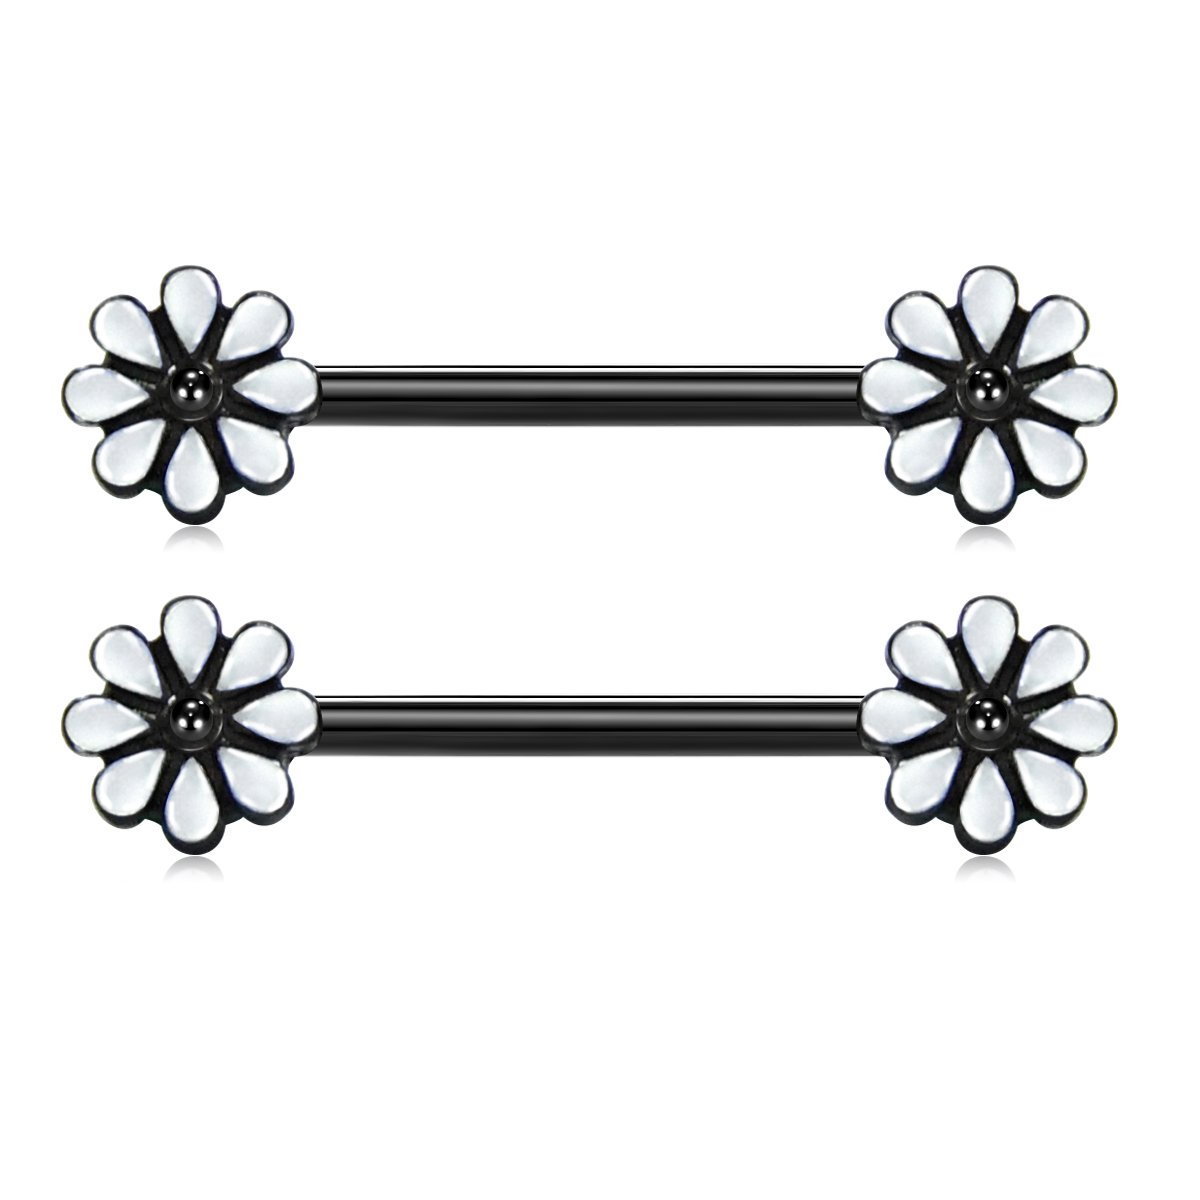 JFORYOU Pair of Spring Blossom Flower Nipple Barbell Ring Cute white Daisy Flower 14G 5/8 inch Stainless Steel Nipplepiercing JFORYOU Body Jewelry B07F1NSK49_US